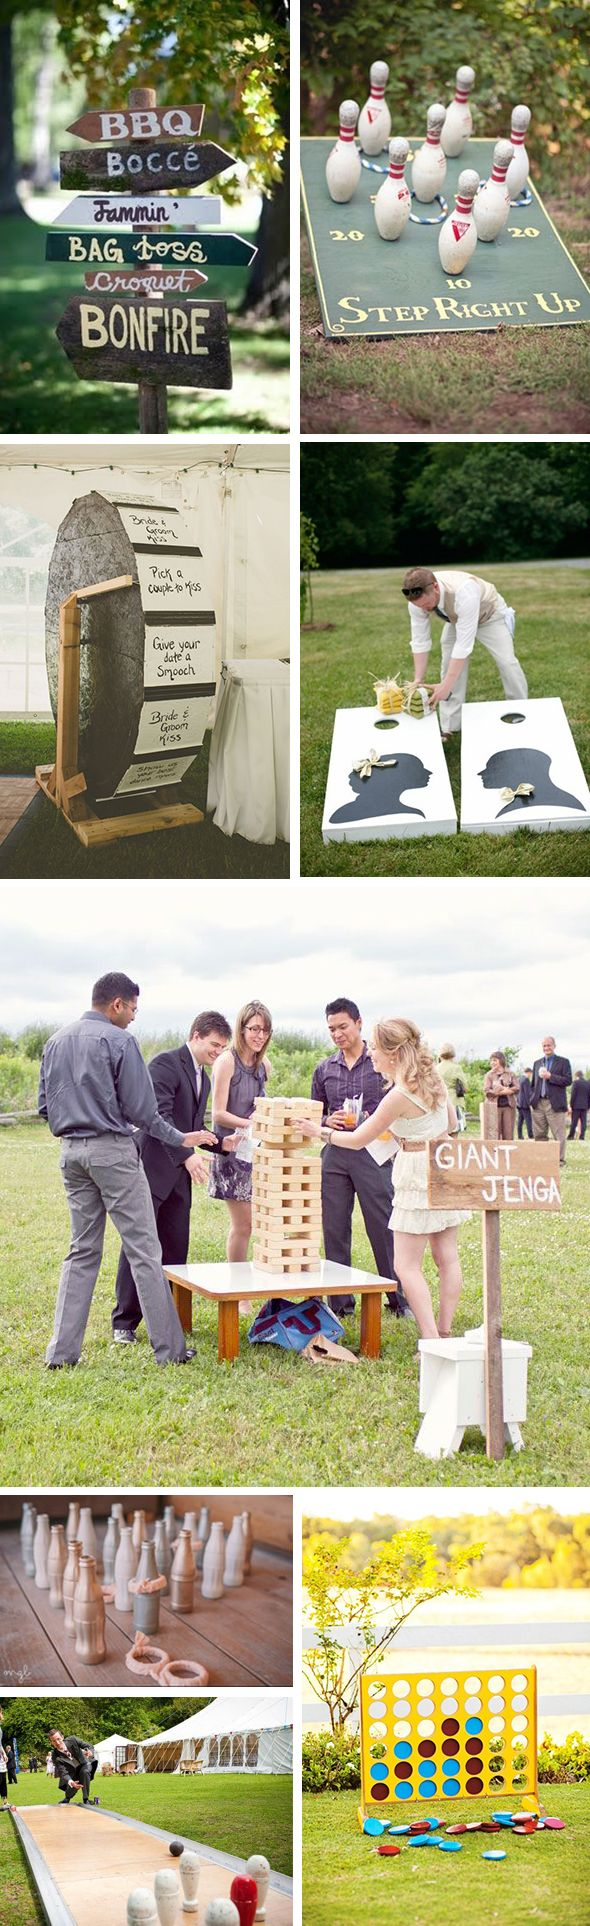 Backyard games, wedding reception